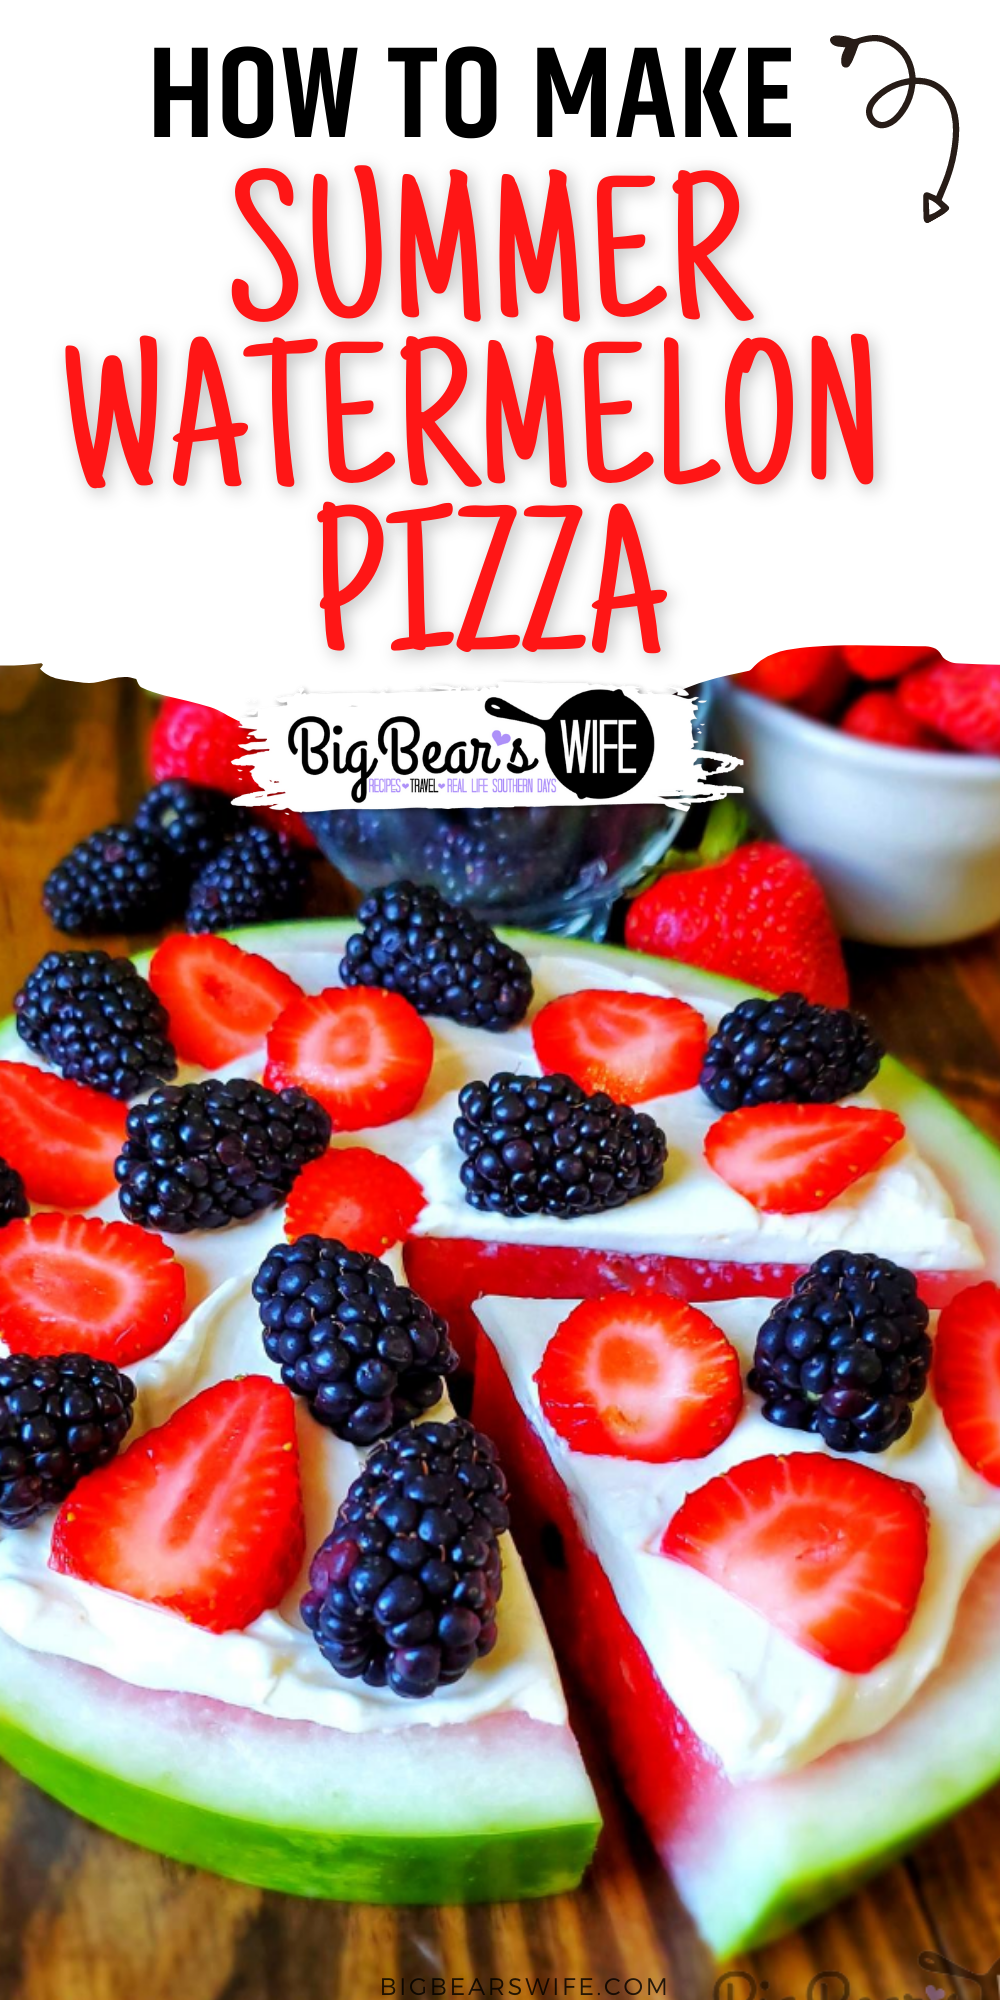 Looking for an easy summer dessert? Need to use up some watermelon from the cookout? Try this Watermelon Pizza that's easy to make and totally customizable! via @bigbearswife